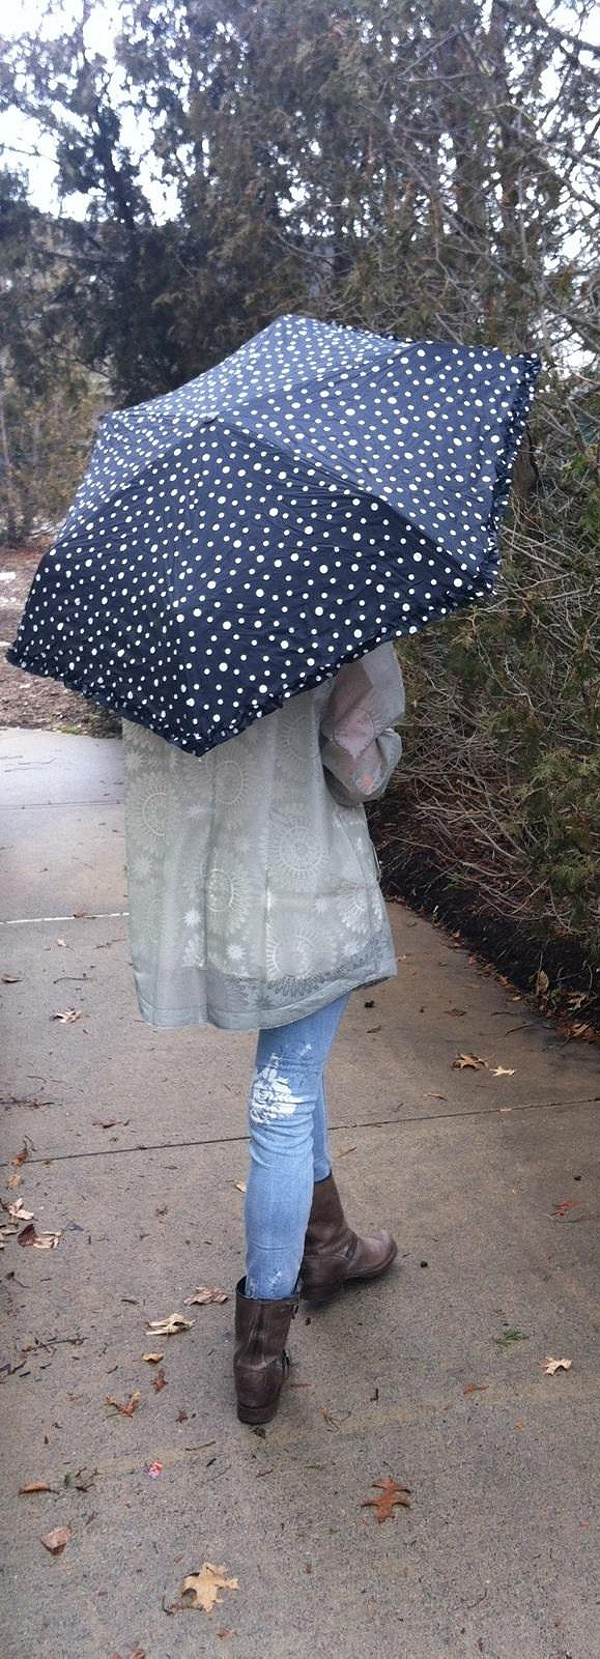 Catching Stars Raincoat style pic